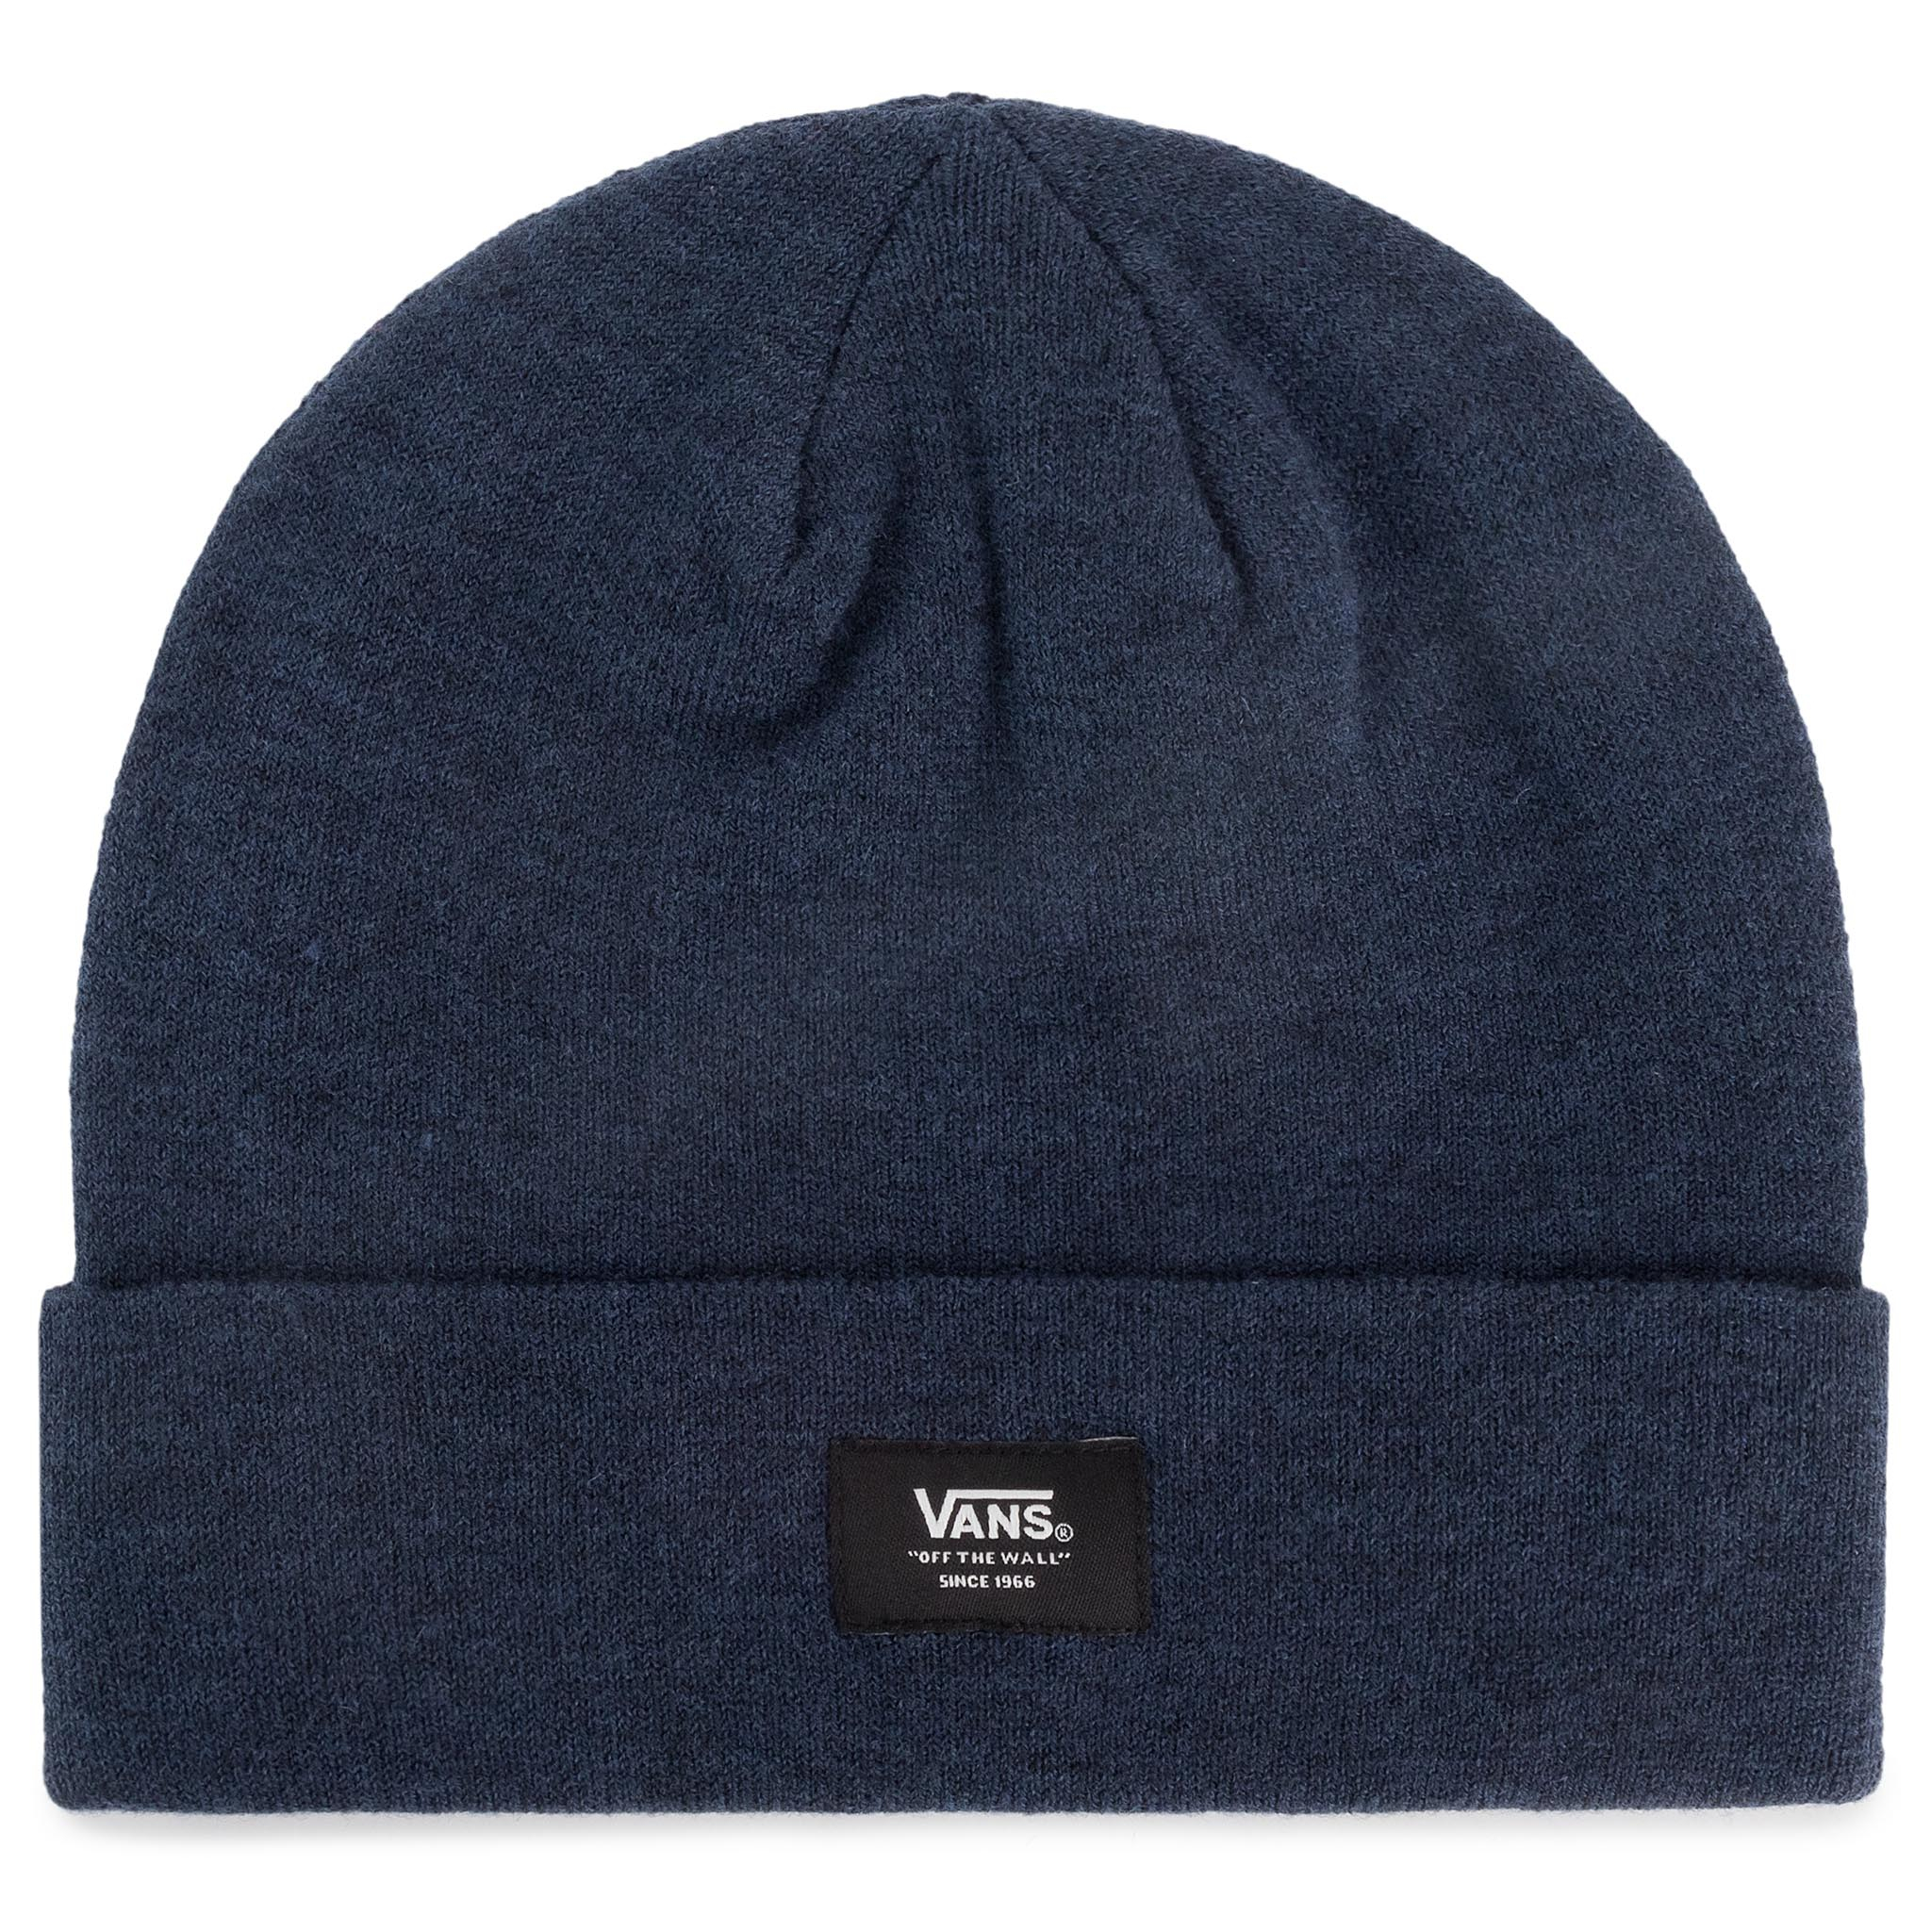 Căciulă VANS - Gable Cuff Bean VN0A3HOKLKZ Dress Blue